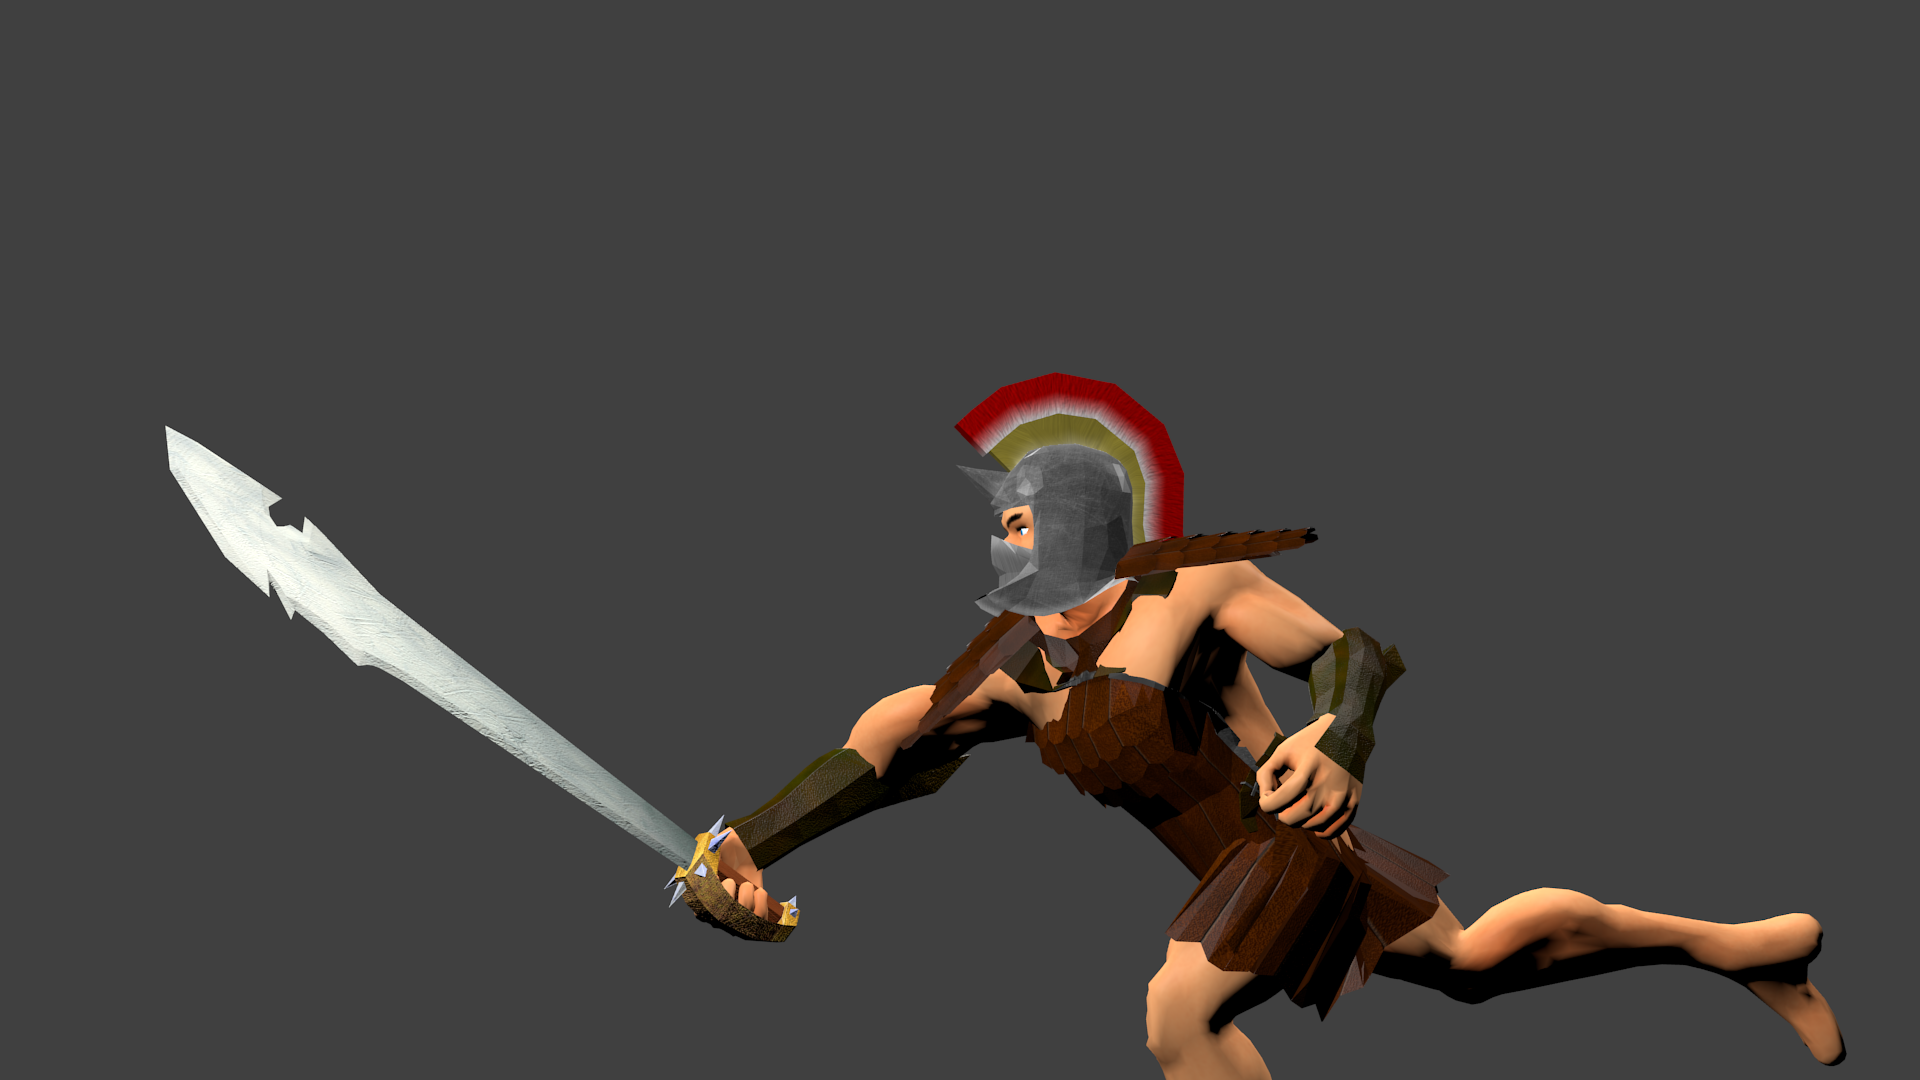 And finally, this is the preliminary animation still for the Longsword swing.